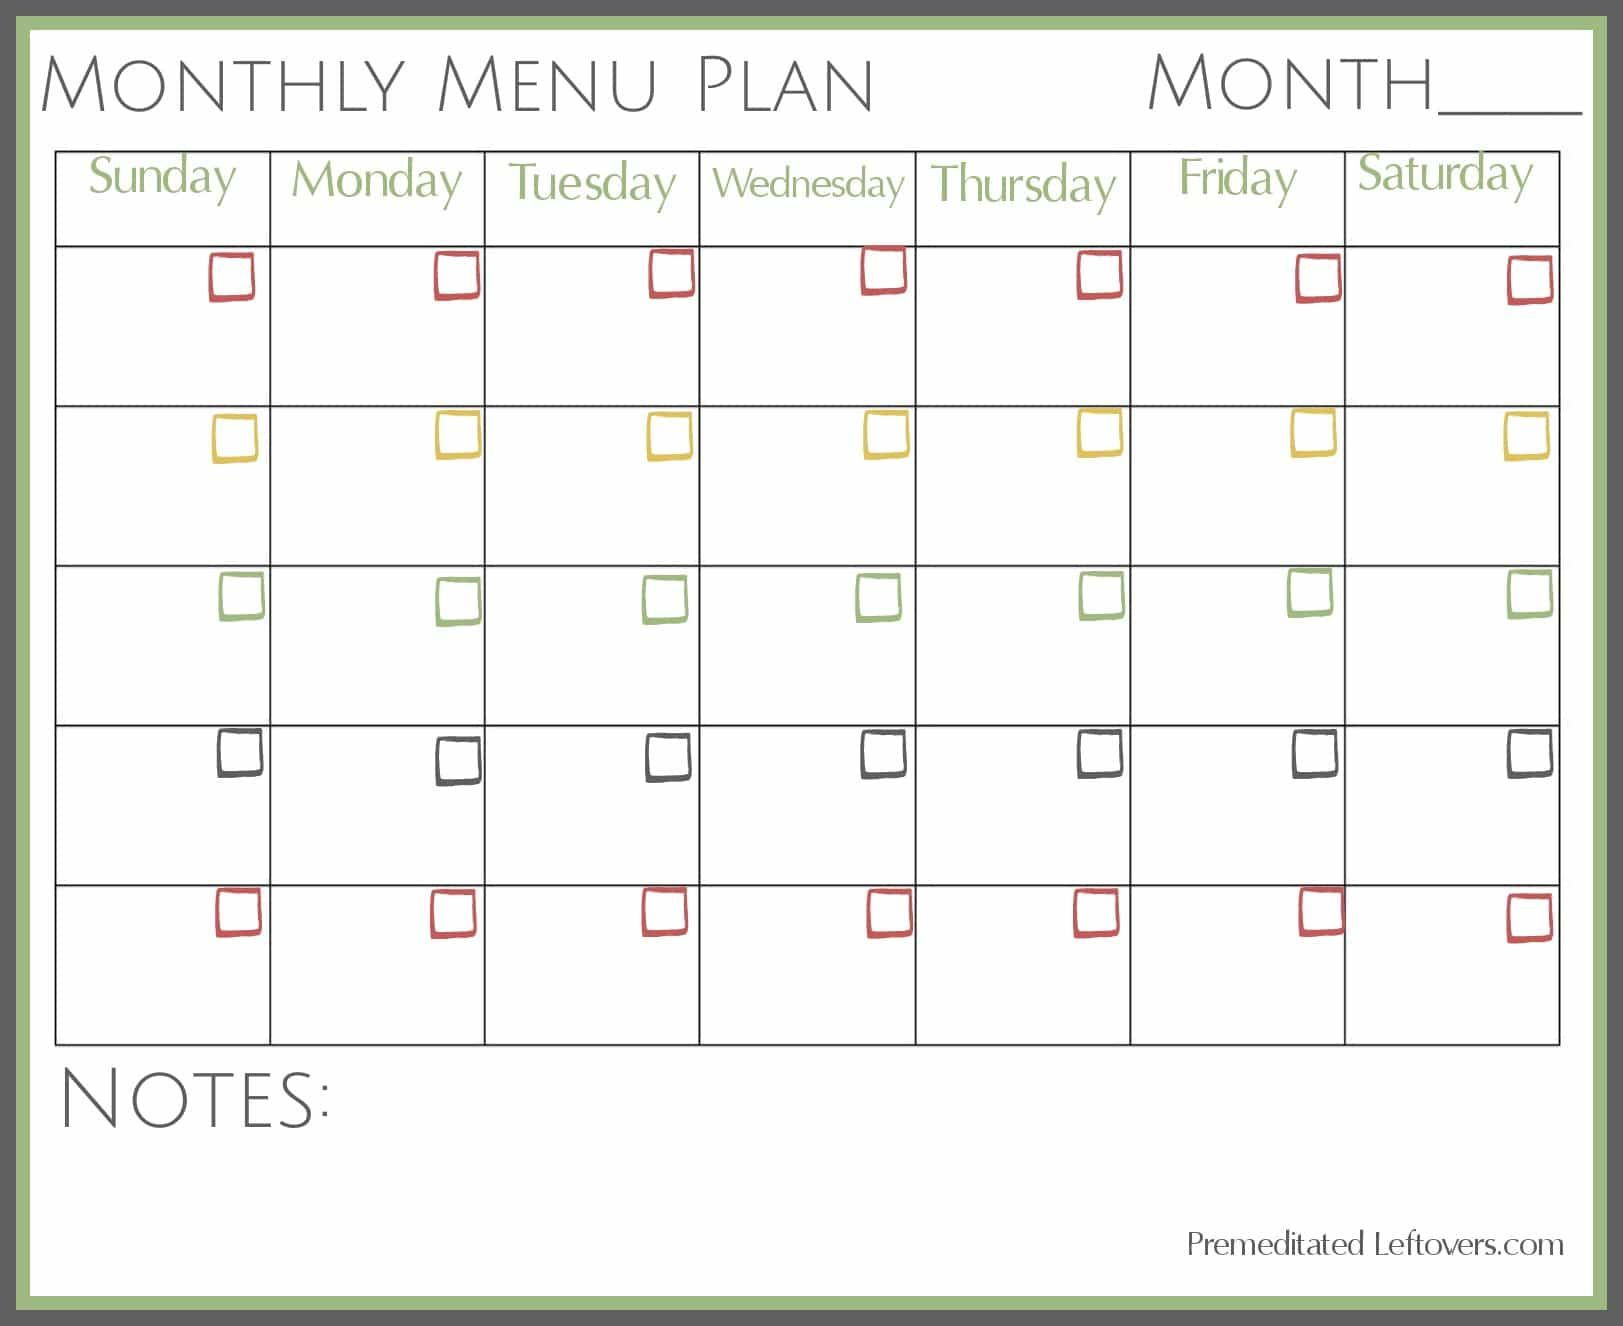 photo about Monthly Meal Planner Printable named Absolutely free Printable Regular monthly Menu Software printable planners